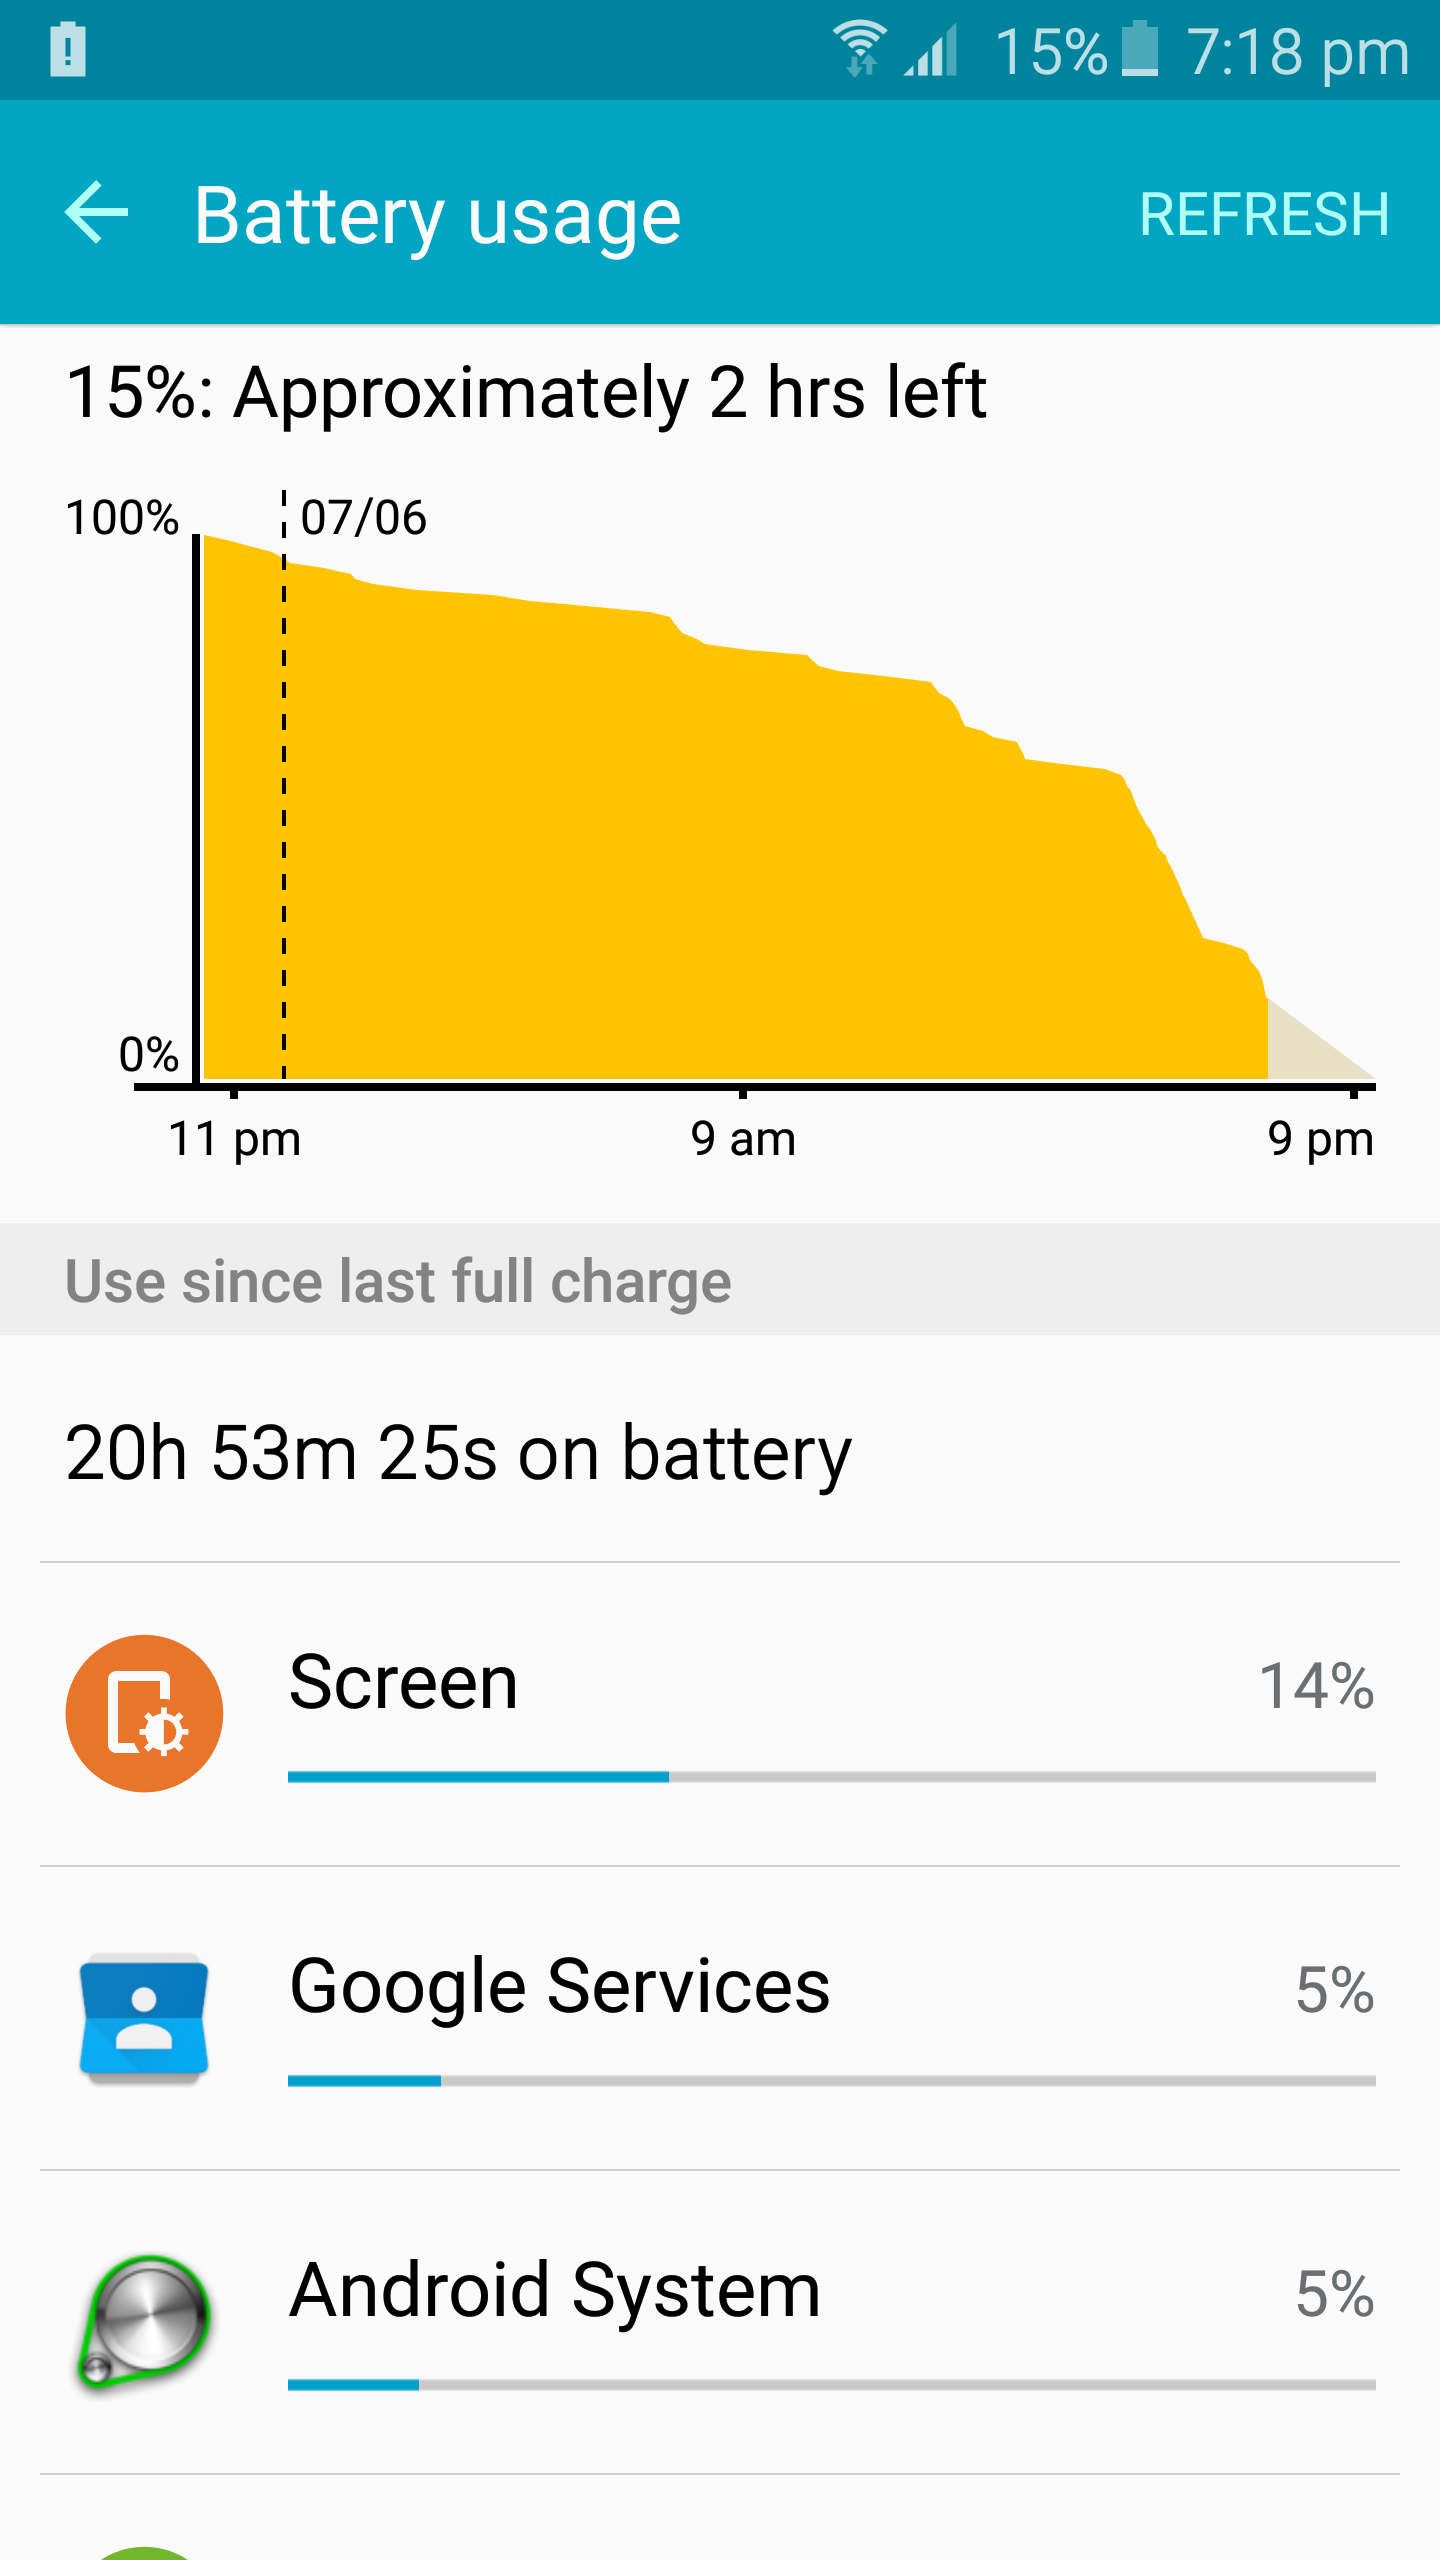 Samsung Galaxy S6 Battery Life - 1